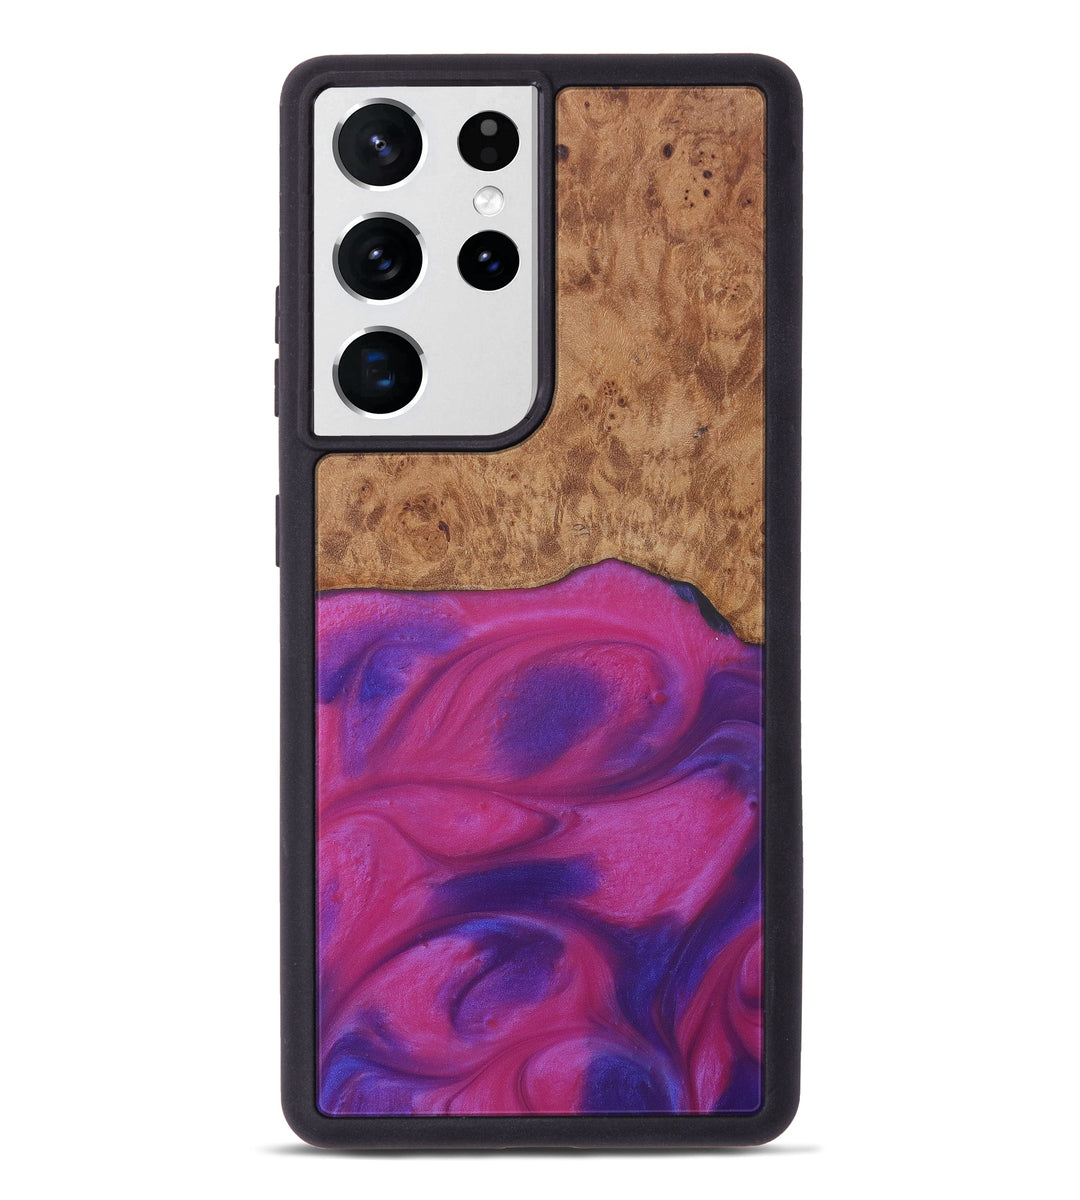 Galaxy S21 Ultra Wood+Resin Phone Case - Luise (Purple, 408663)